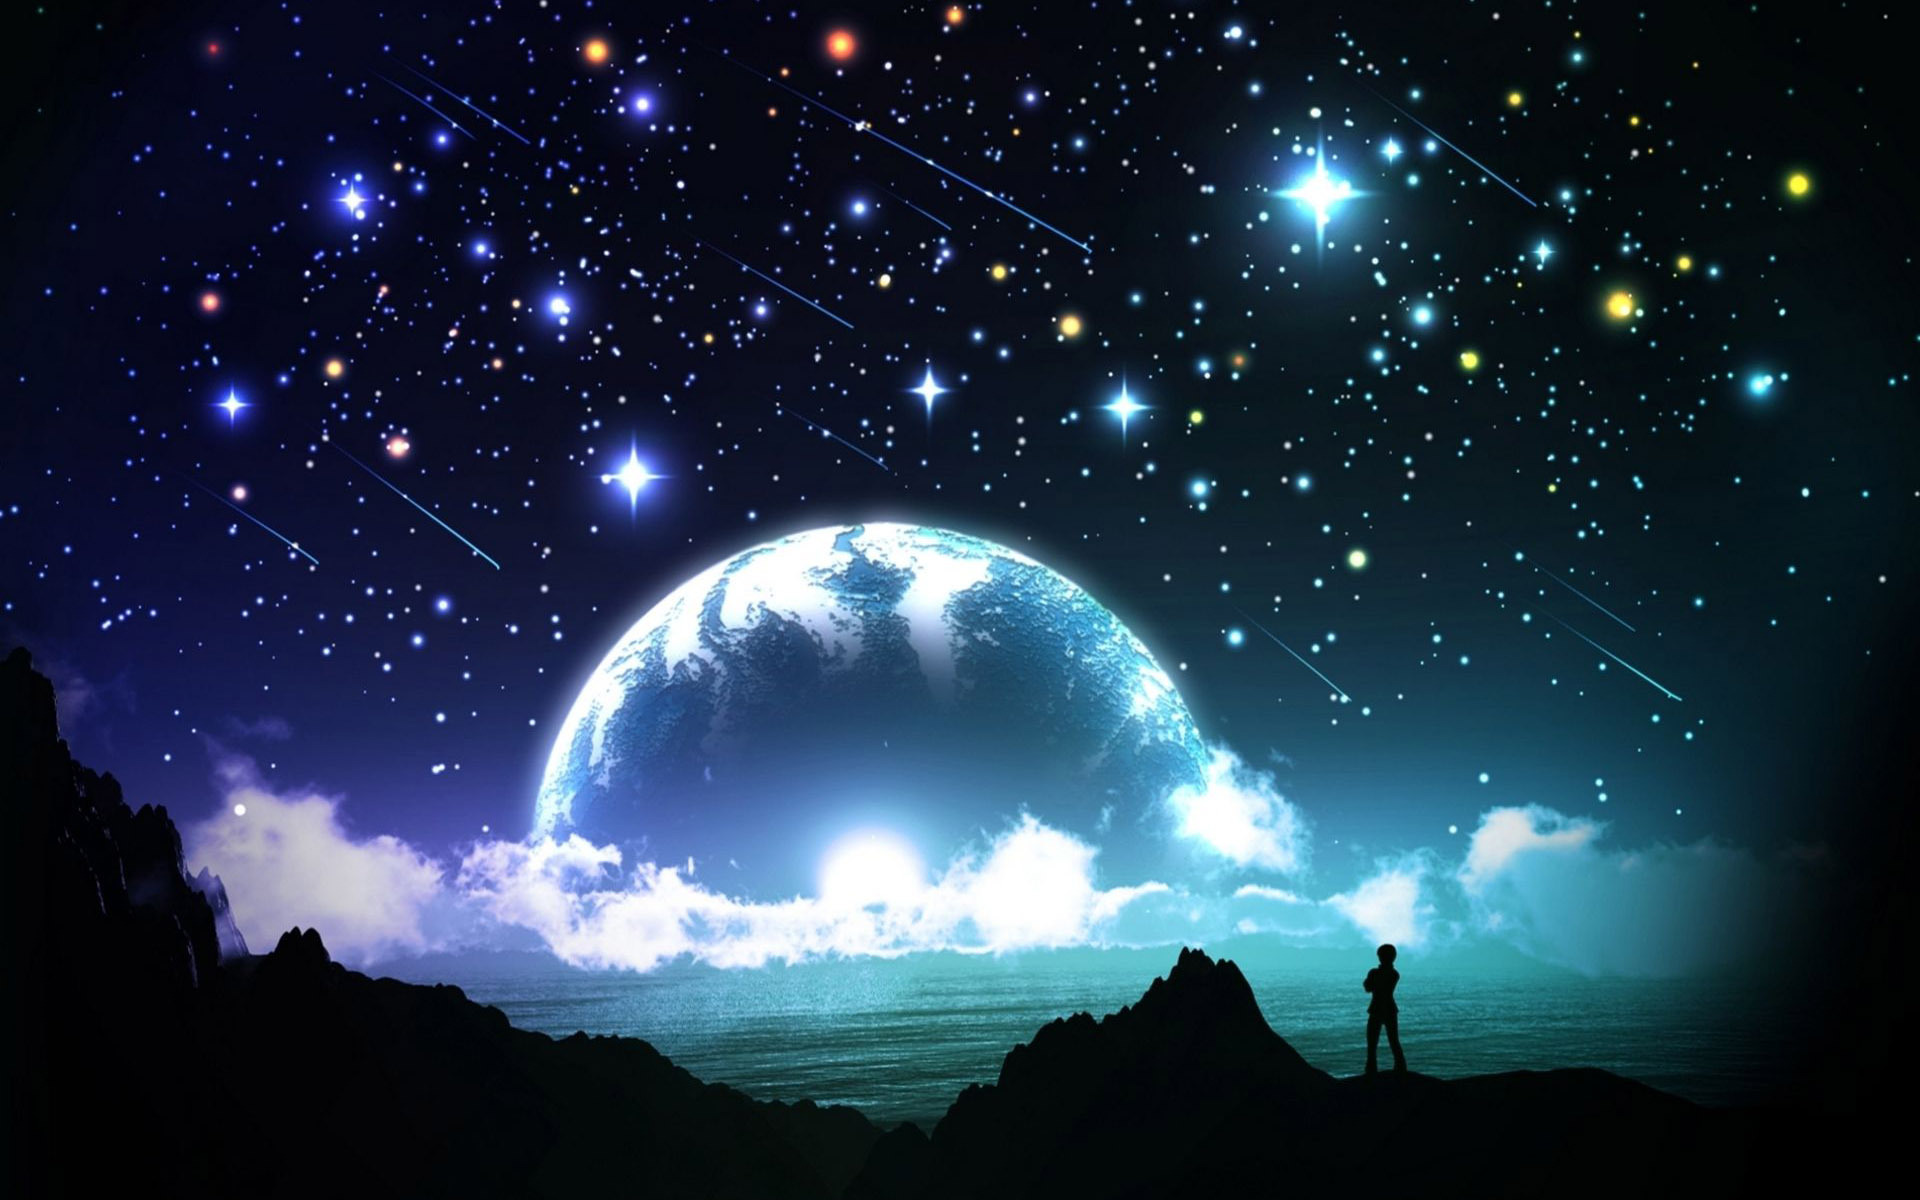 Top 10 Beautiful Night Live Wallpapers for Android 1920x1200